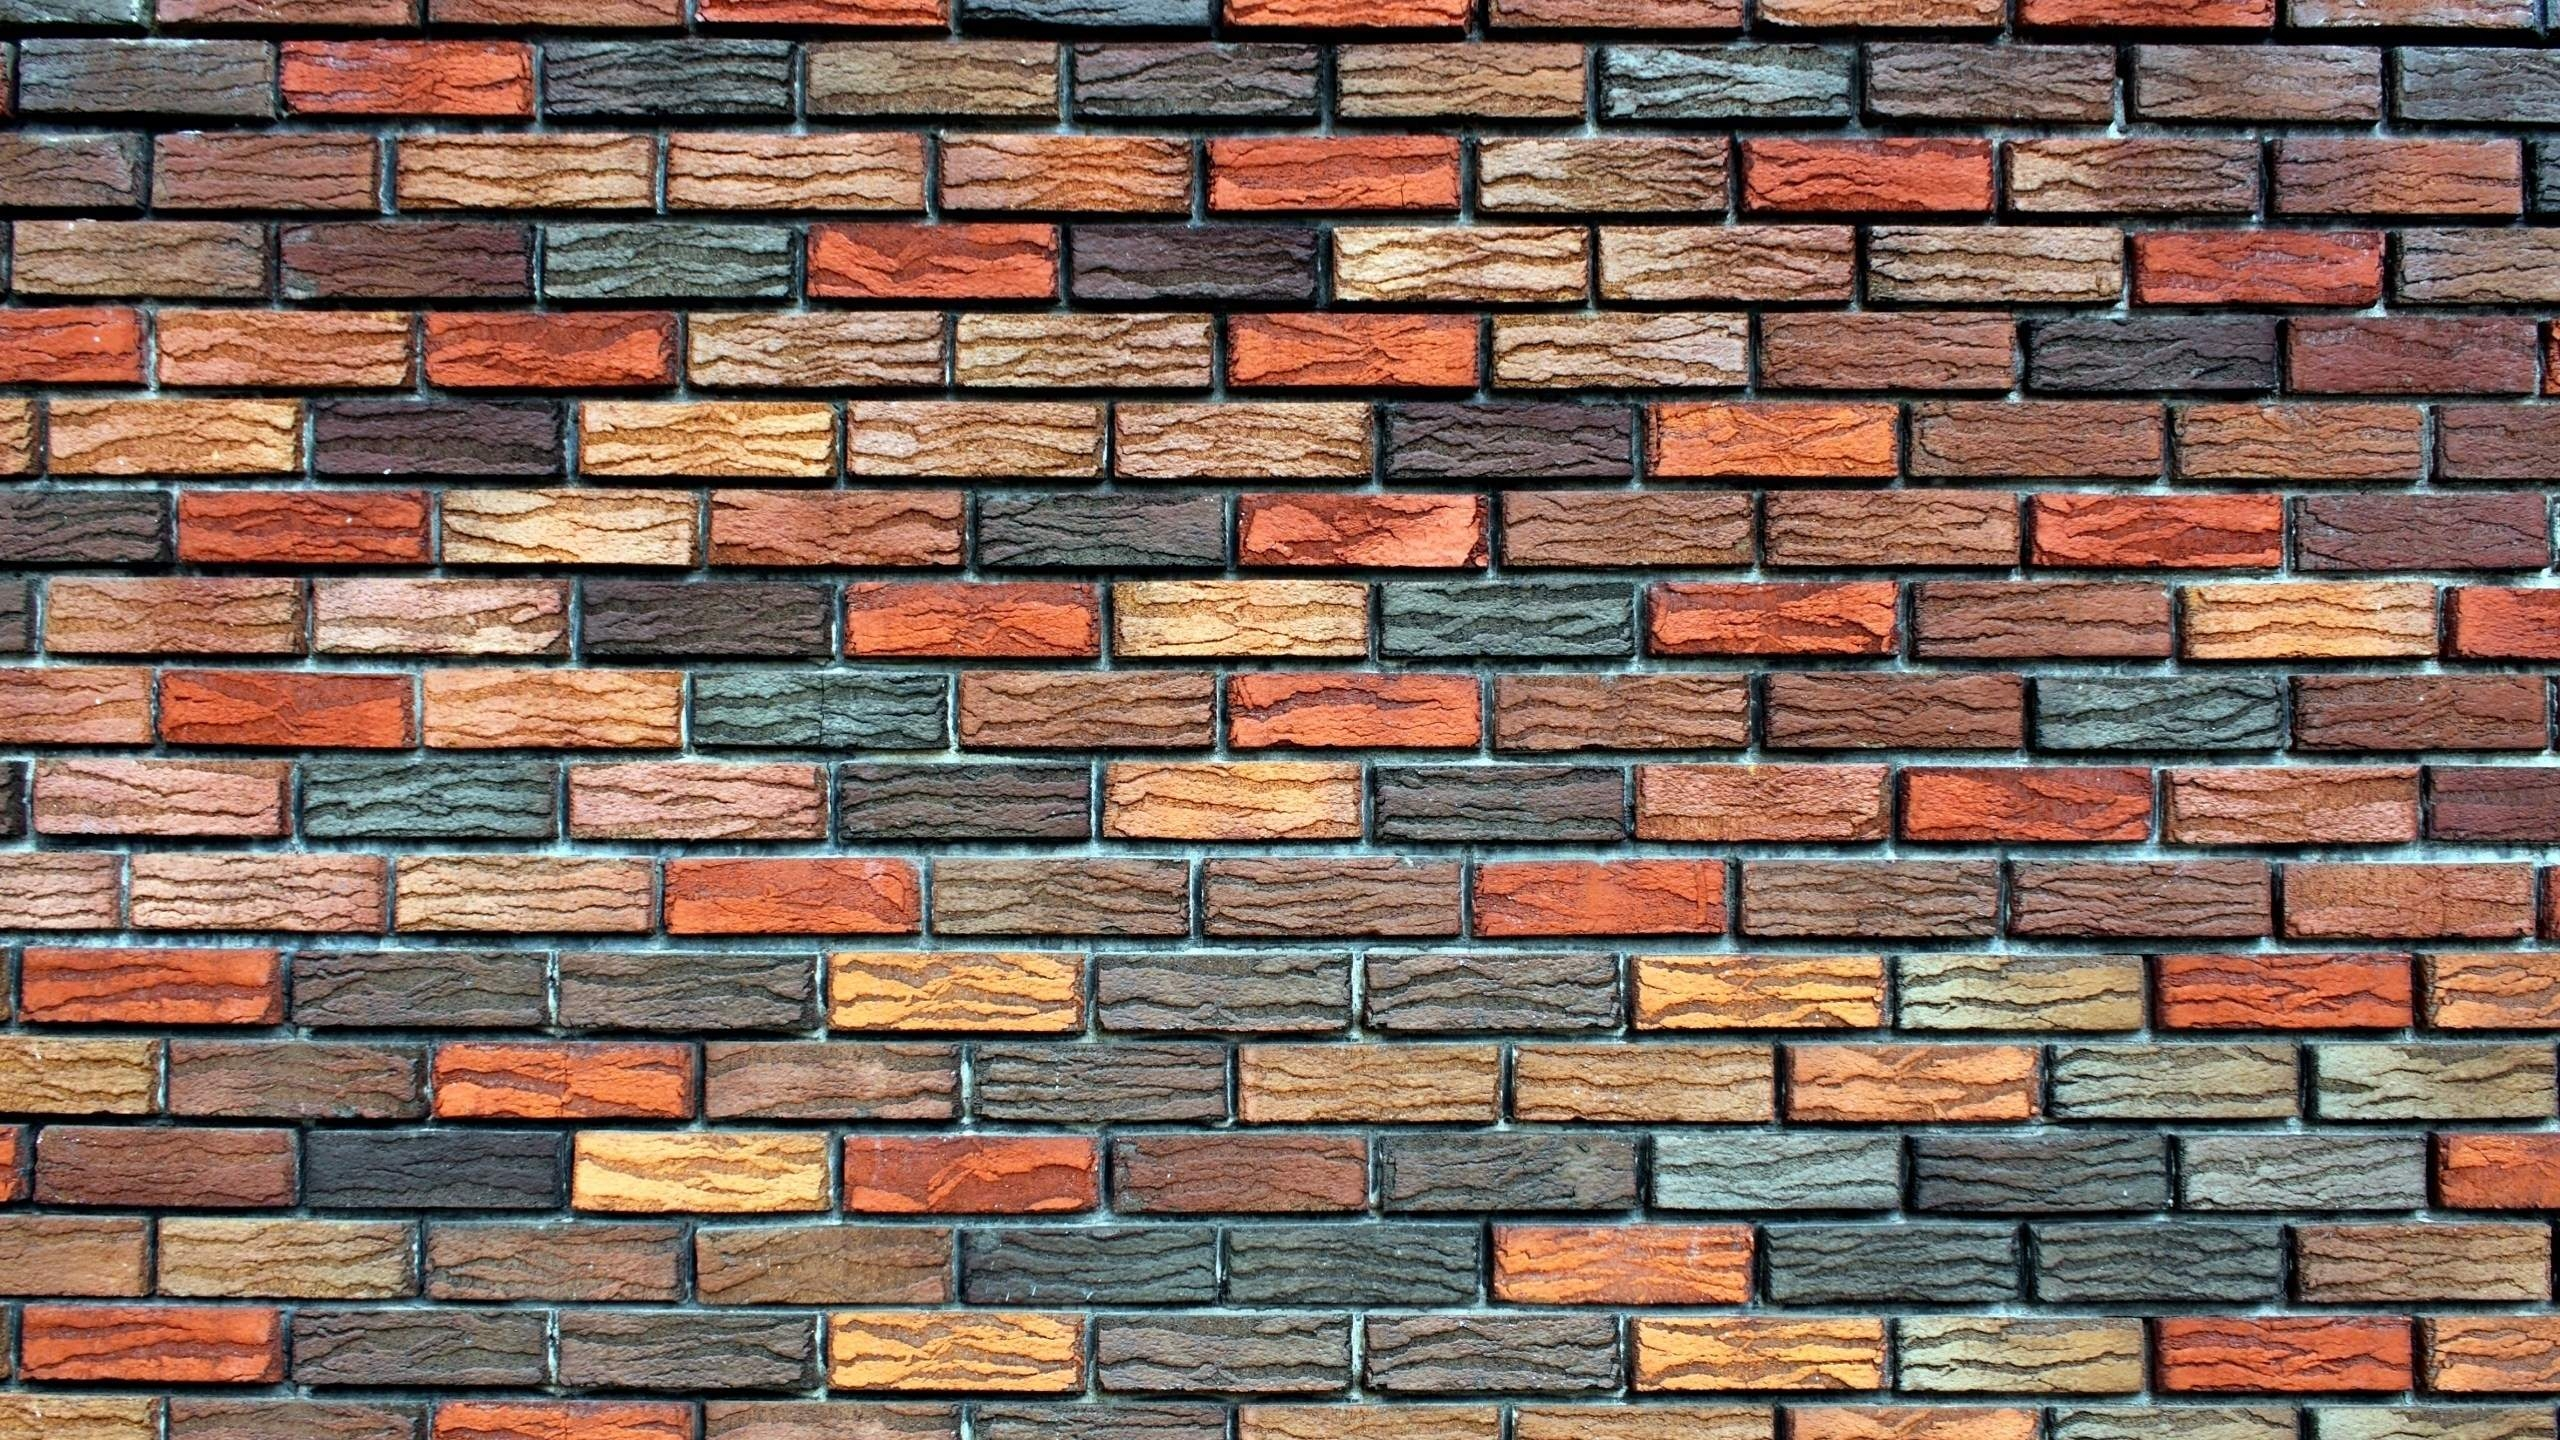 35 brick wall backgrounds psd vector eps jpg download - Papel de ladrillo ...